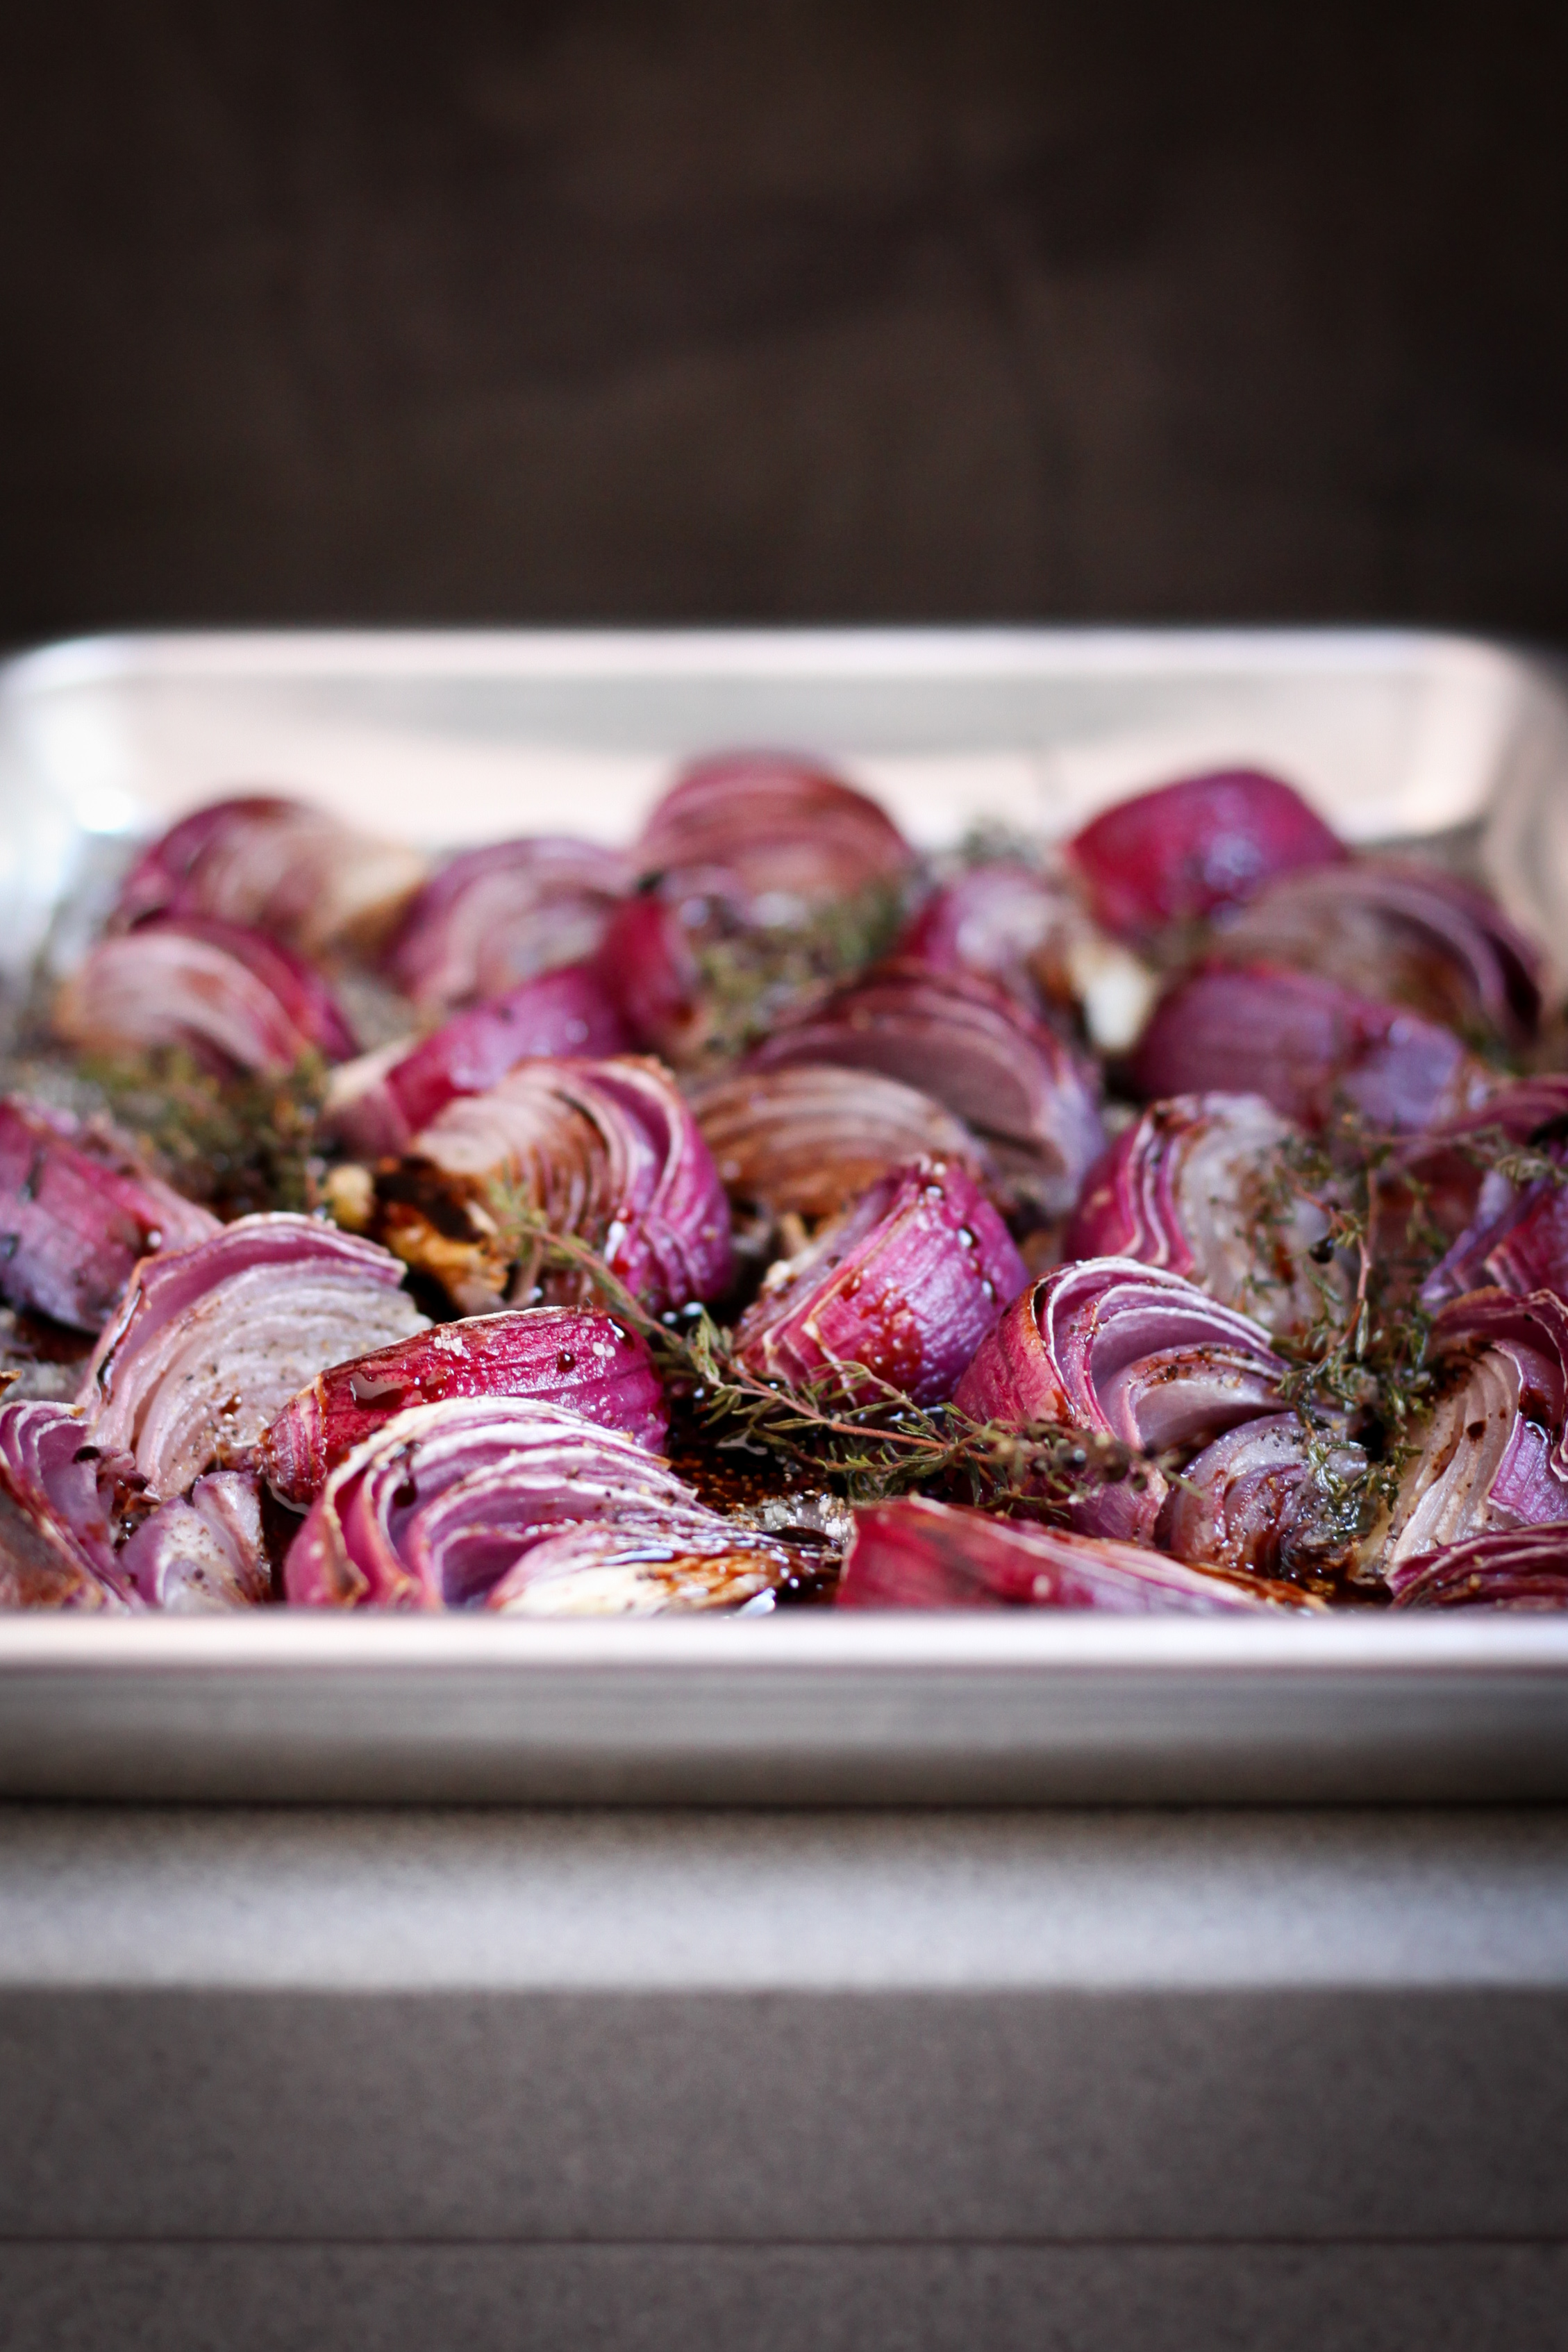 Roasted Red Onions With Thyme and Balsamic | amodestfeast.com | @amodestfeast